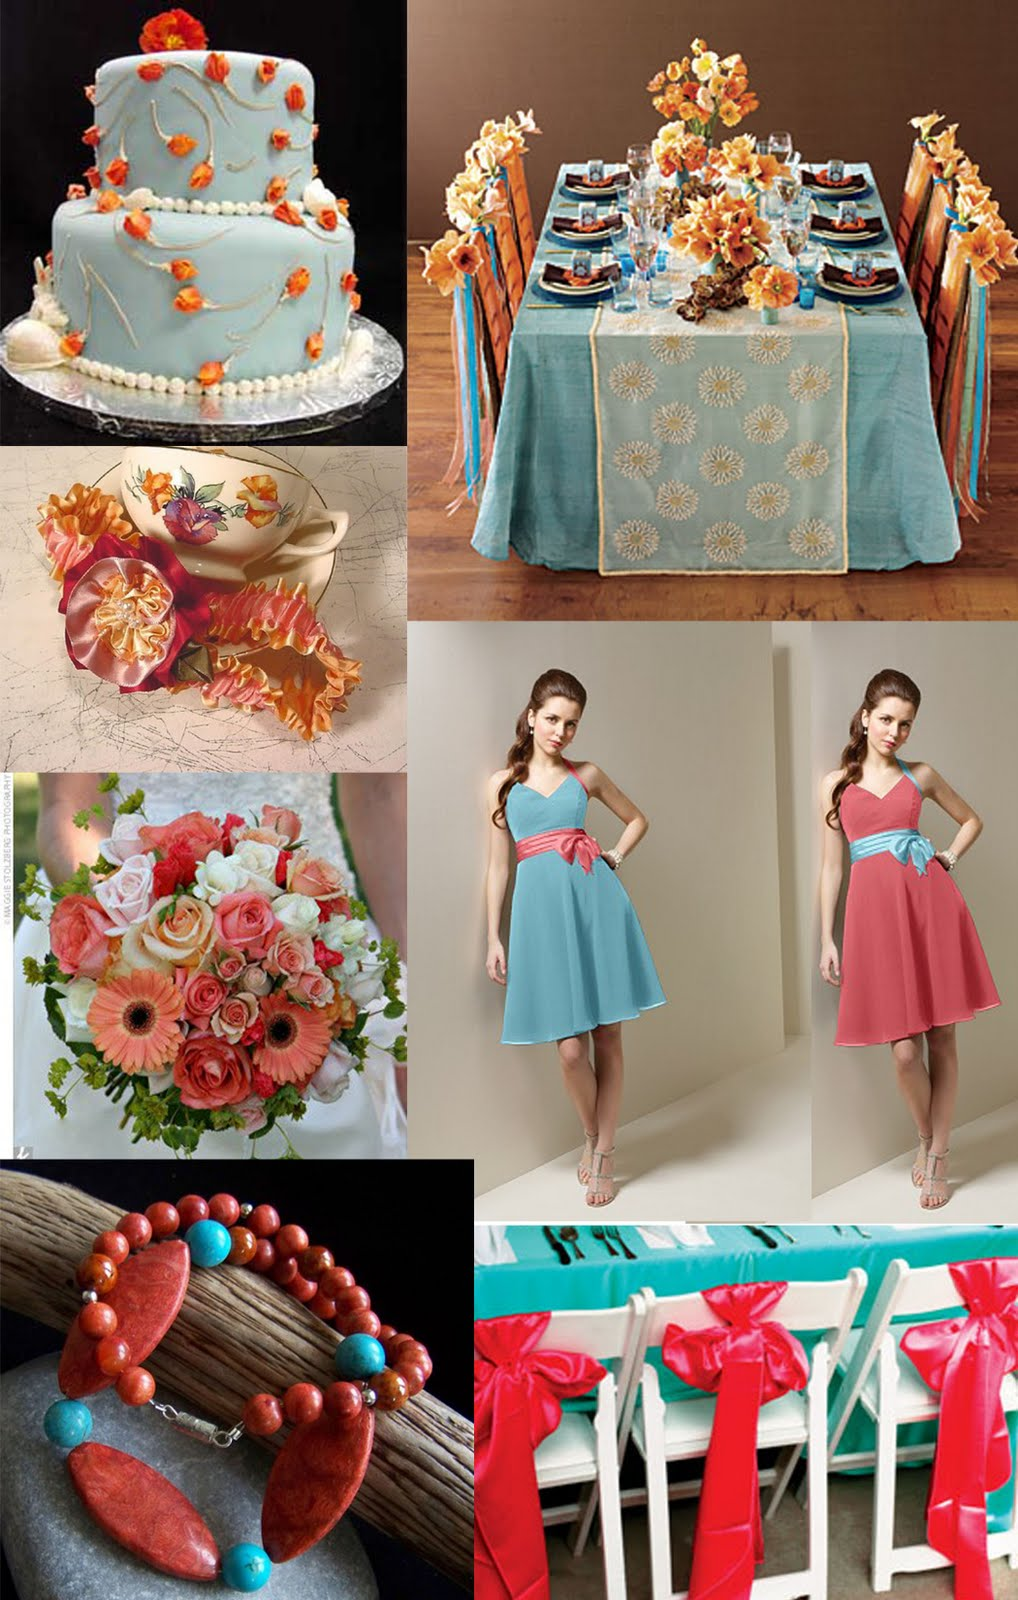 Most Popular Wedding Colors of 2015 Coral Turquoise and